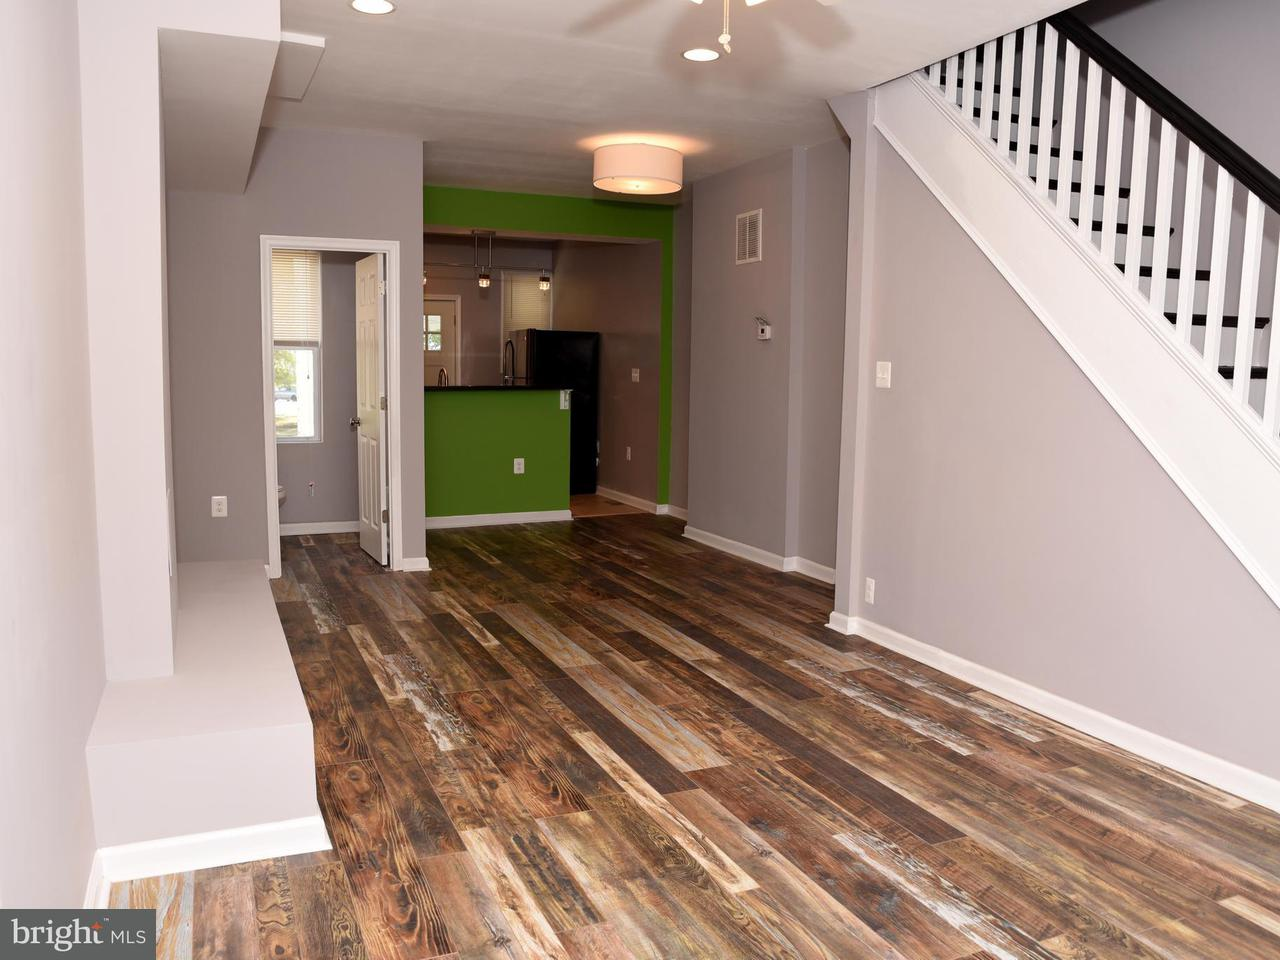 Other Residential for Rent at 2457 Westport St Baltimore, Maryland 21230 United States